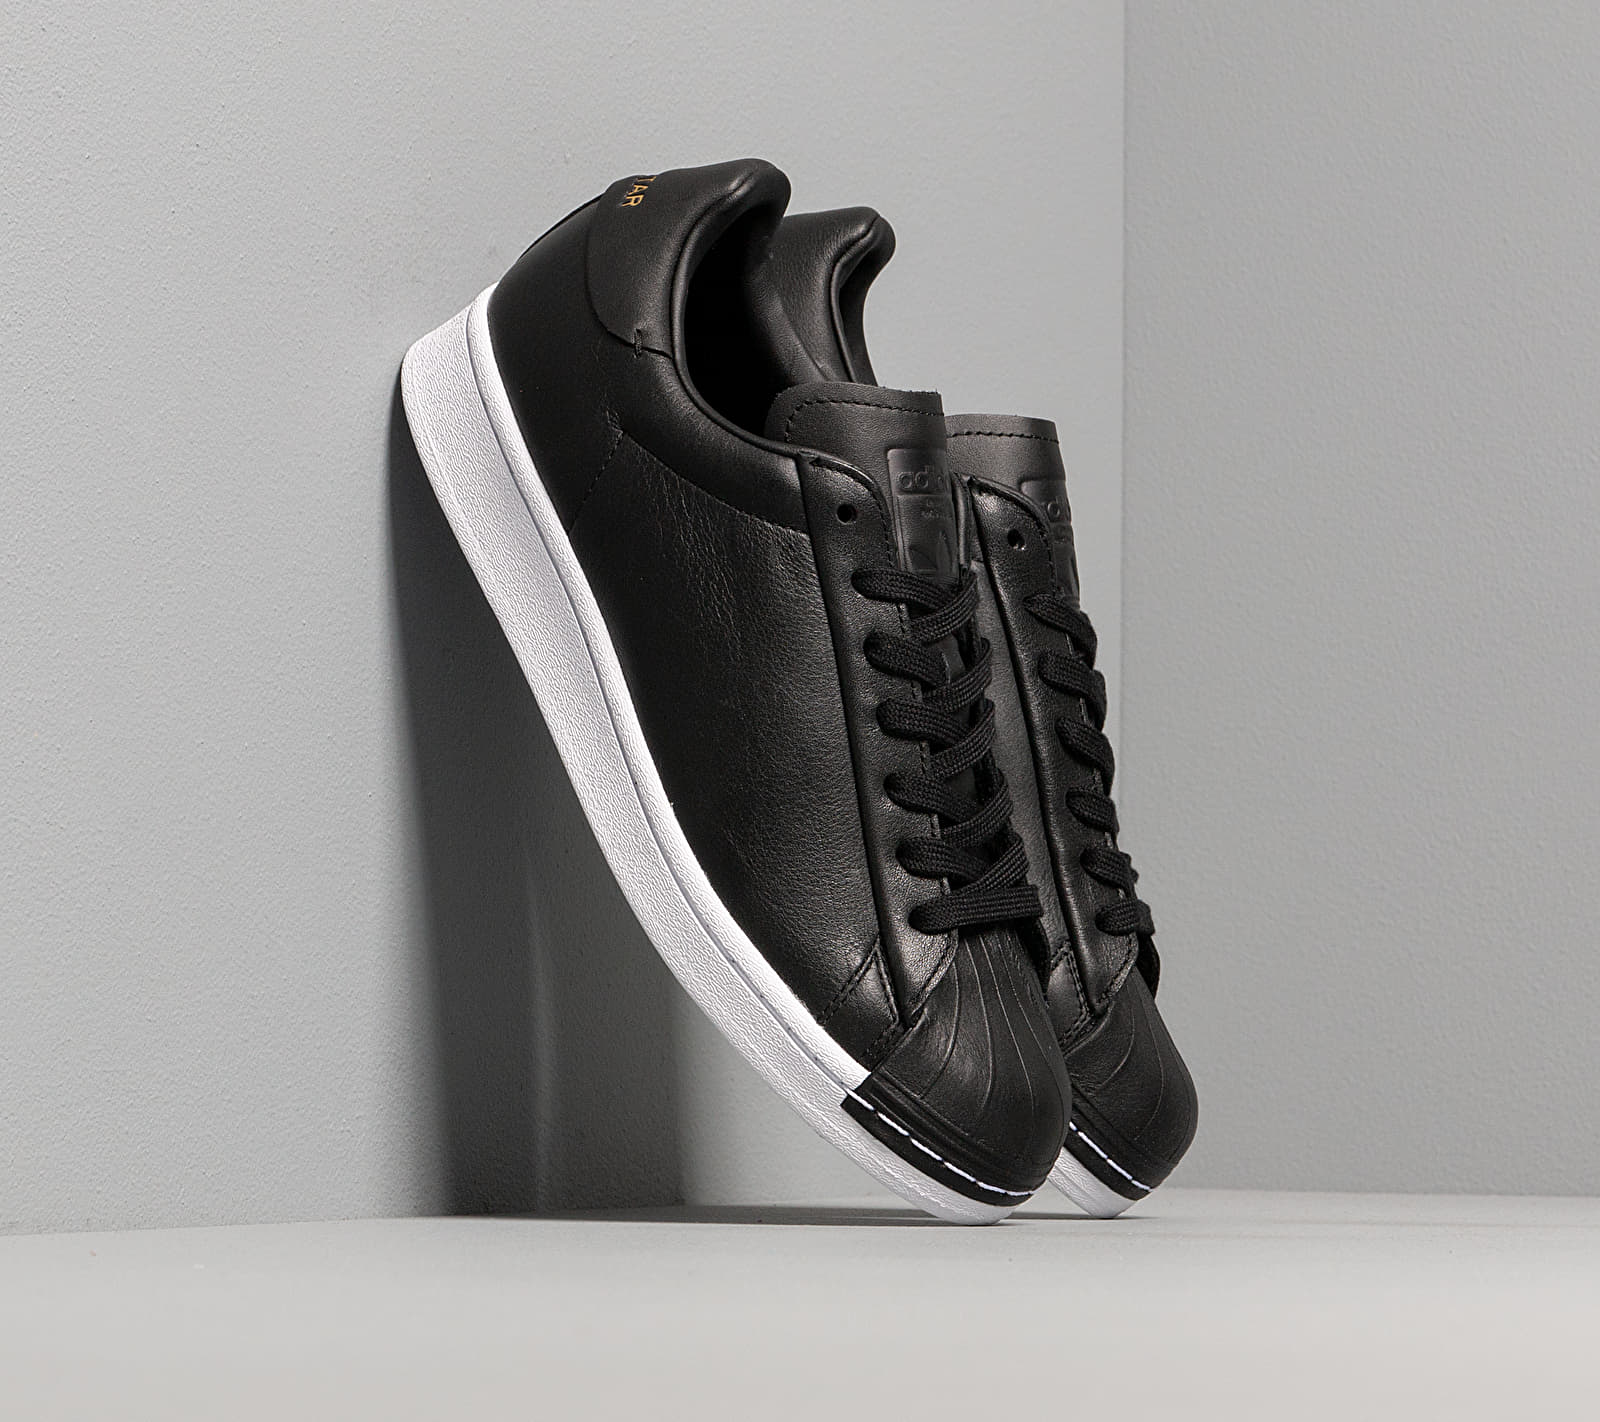 adidas Superstar Pure LT W Core Black/ Ftw White/ Gold Metalic EUR 37 1/3